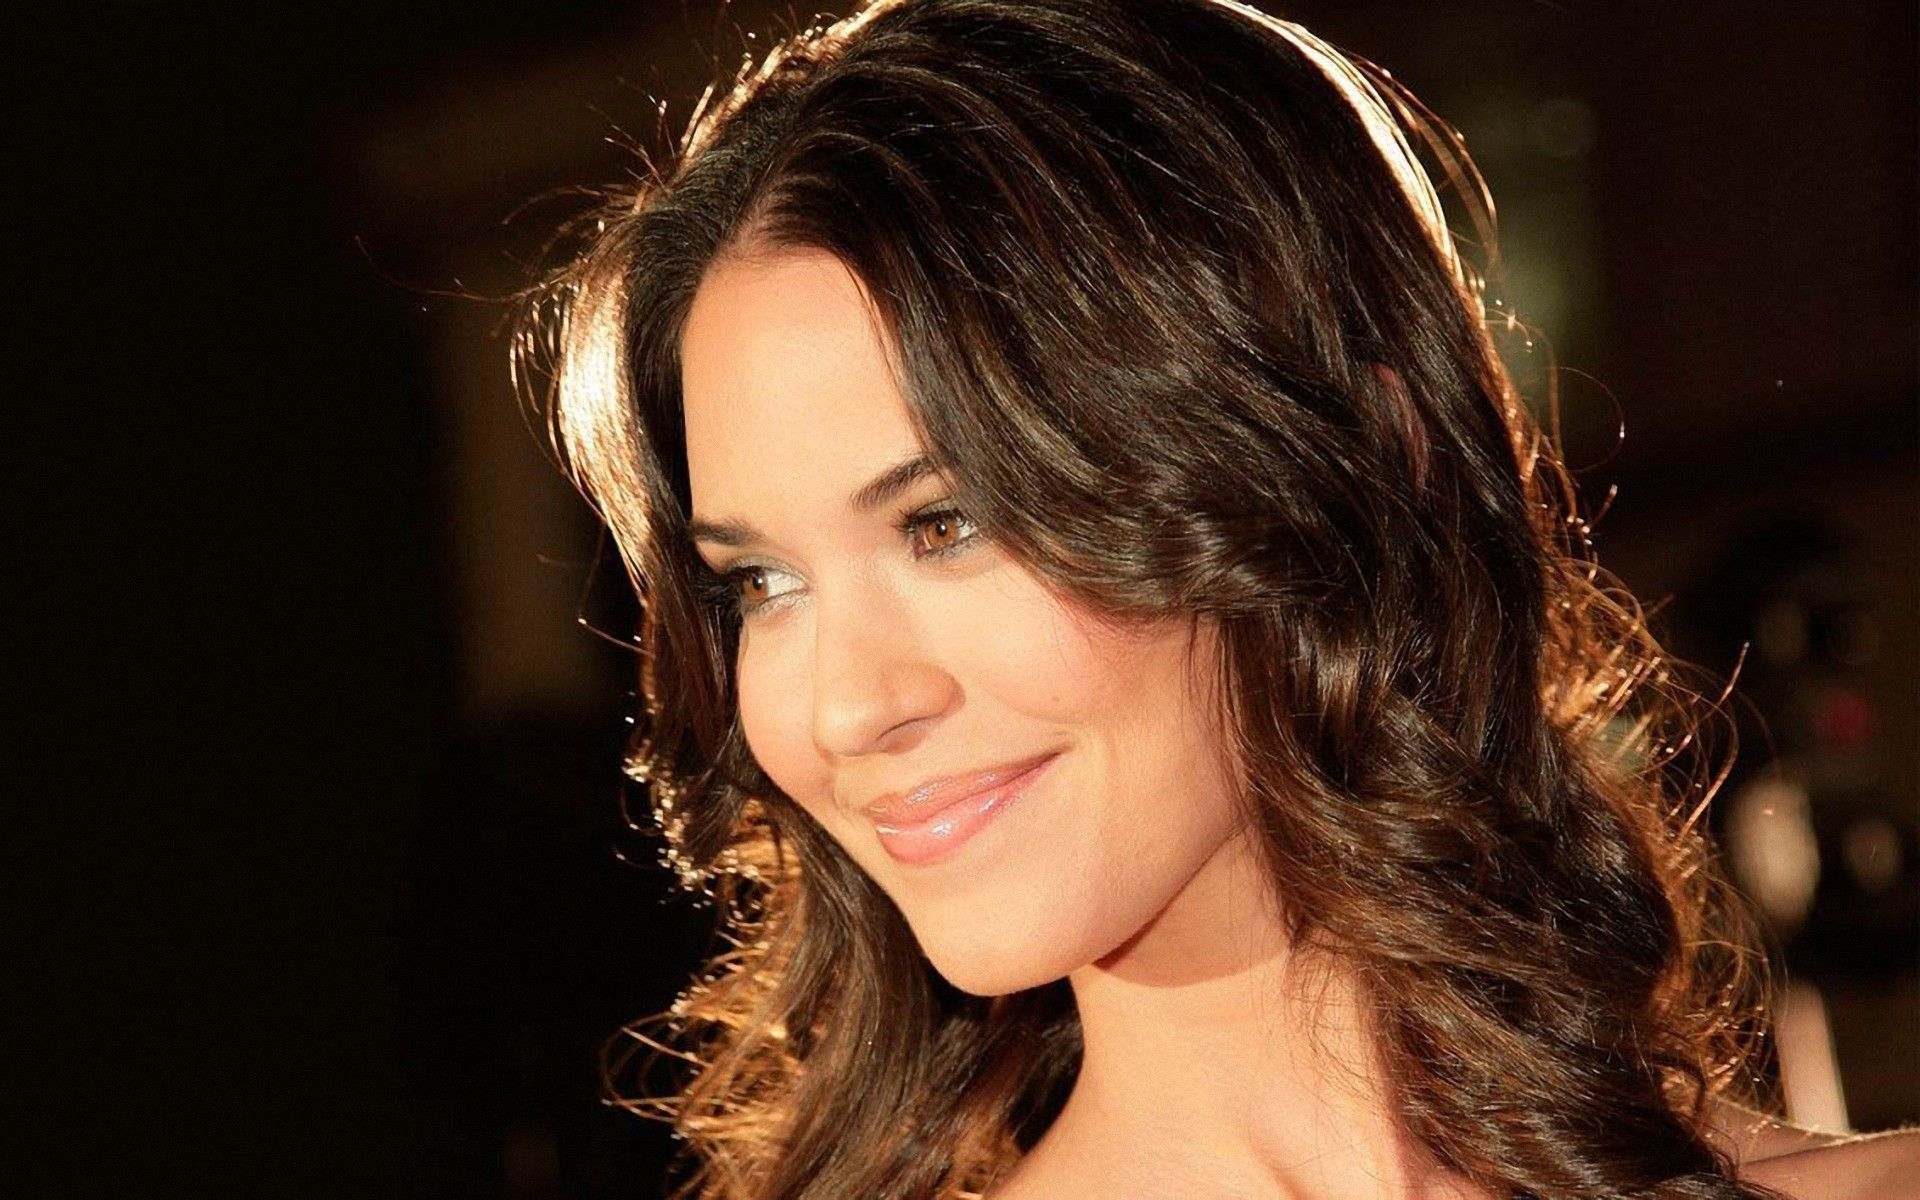 Odette Annable Computer Wallpaper